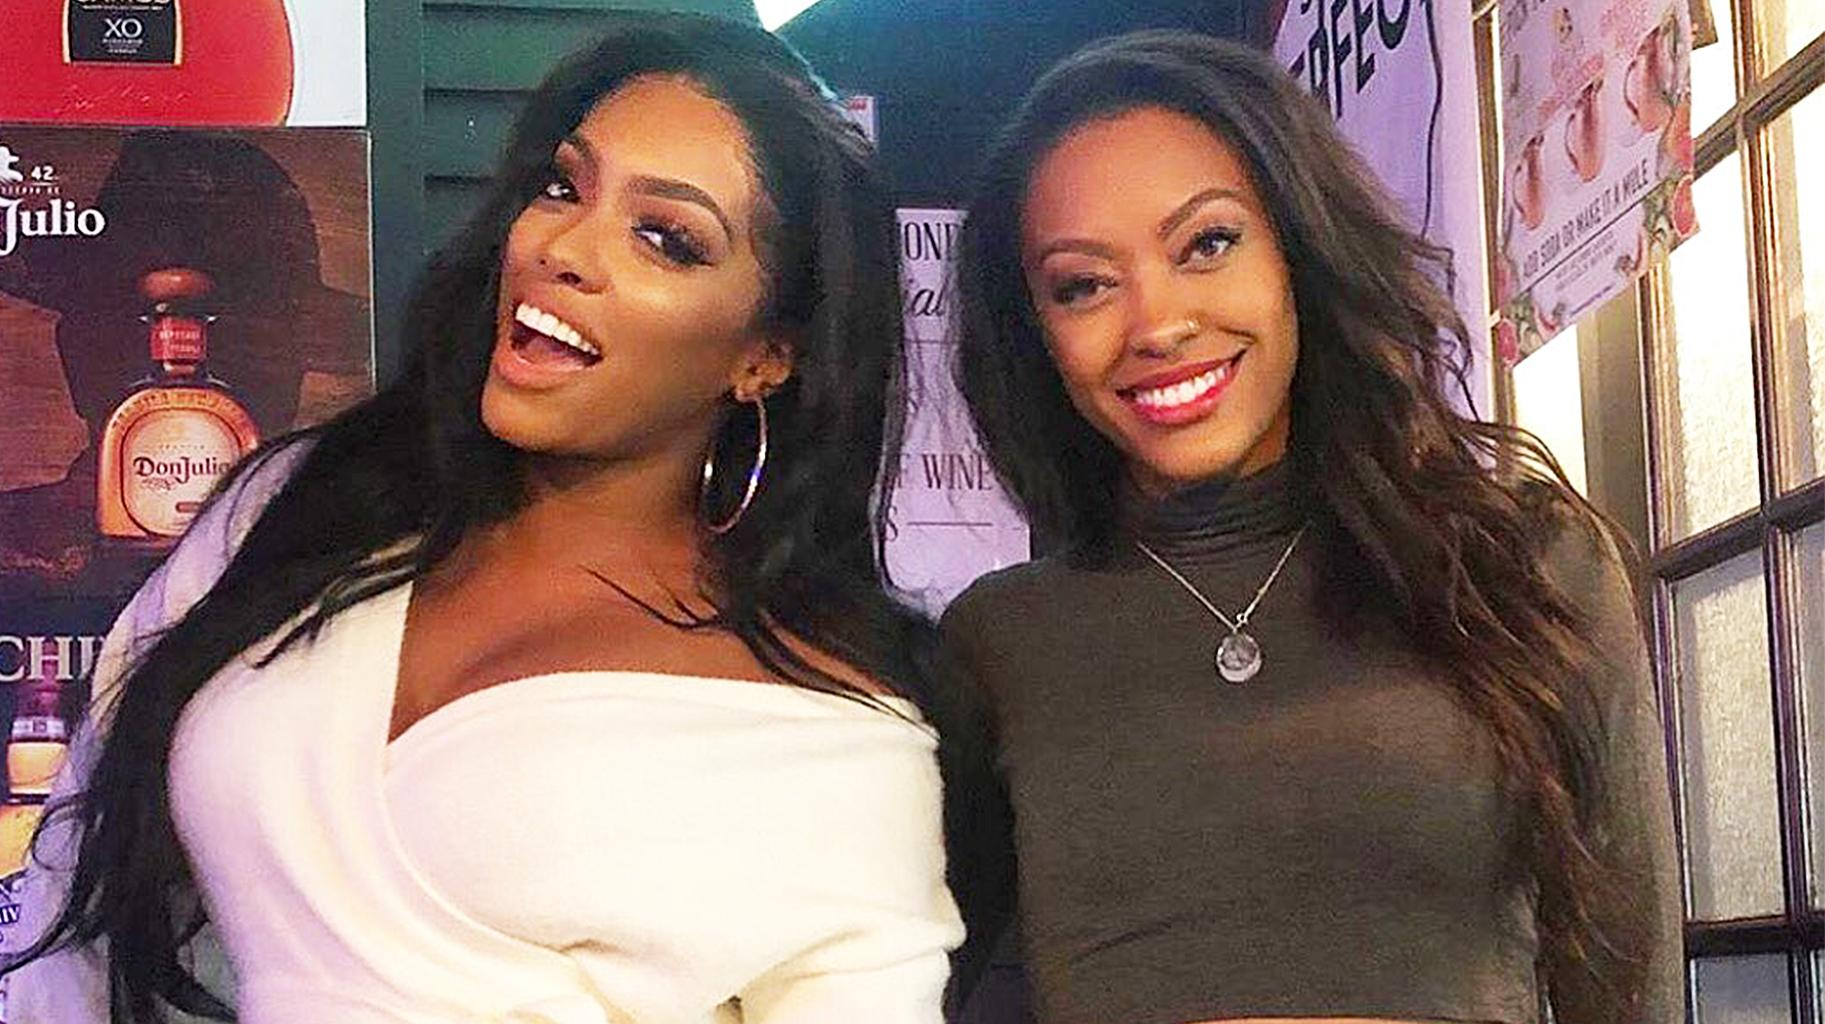 Porsha Williams Is Proud Of Her Sister, Lauren Williams For Becoming A Guest Panelist At An Important Event